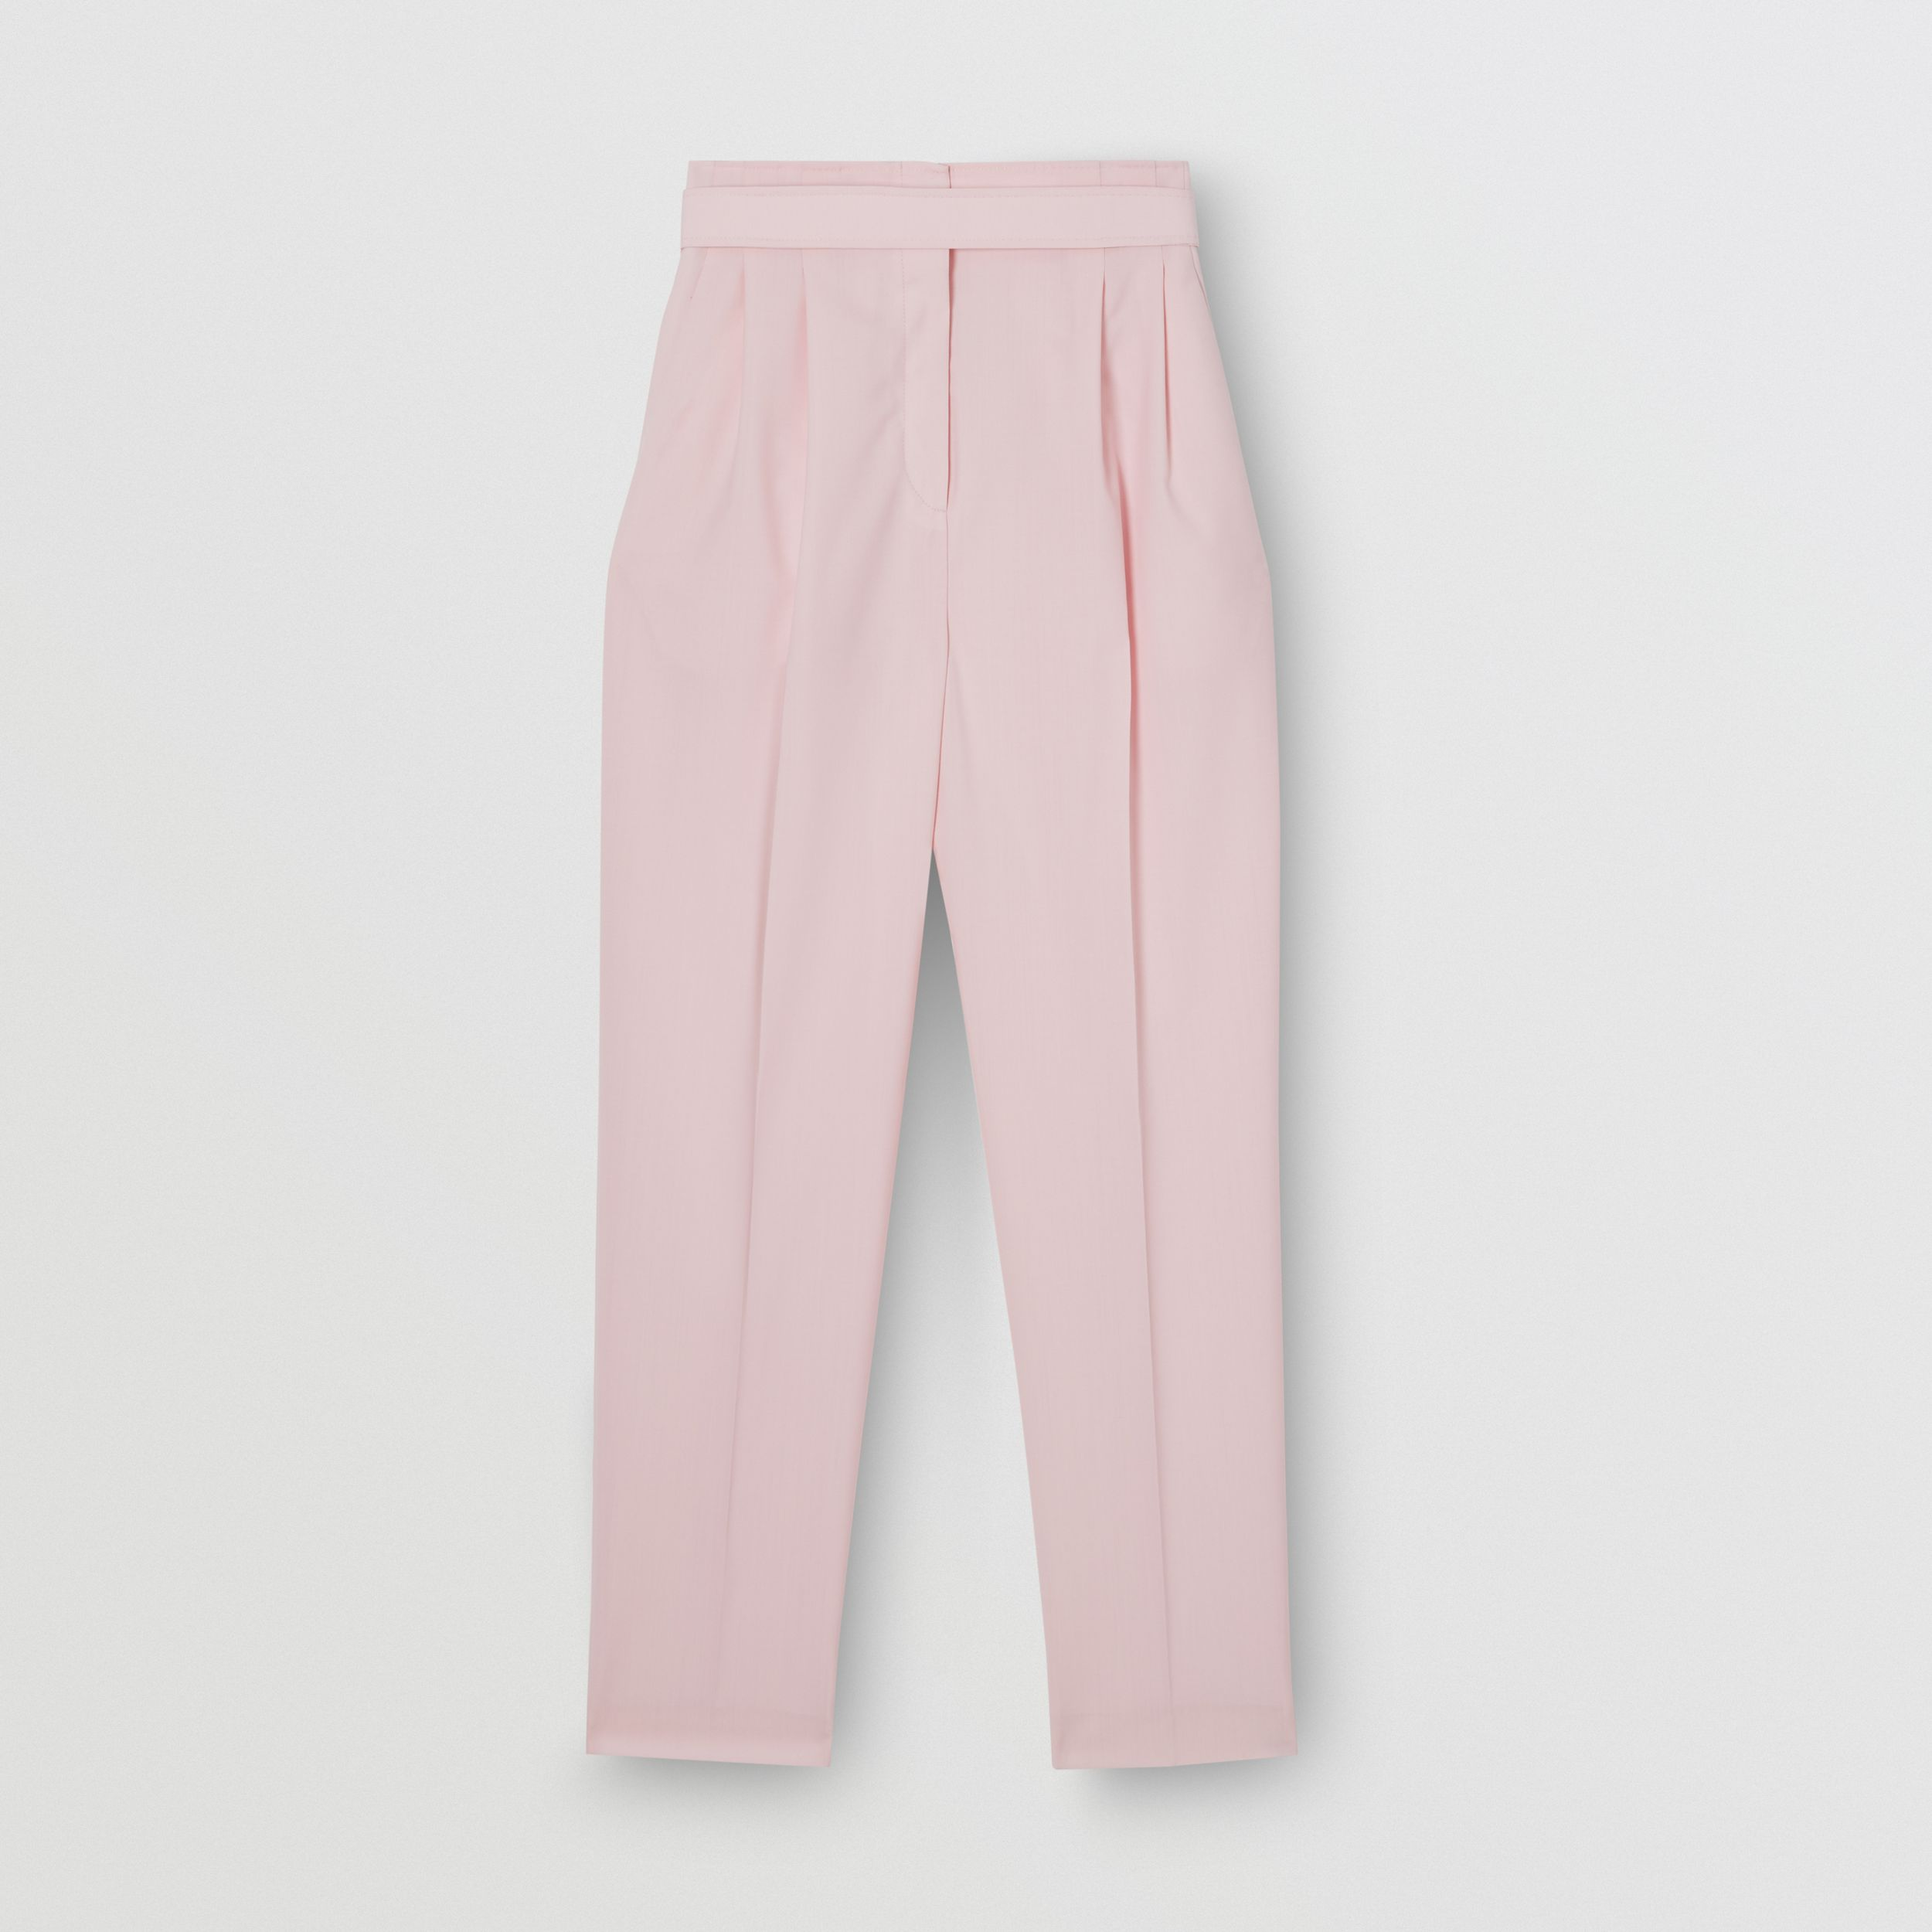 Cut-out Detail Wool Canvas Tailored Trousers in Pastel Pink - Women | Burberry Singapore - 2